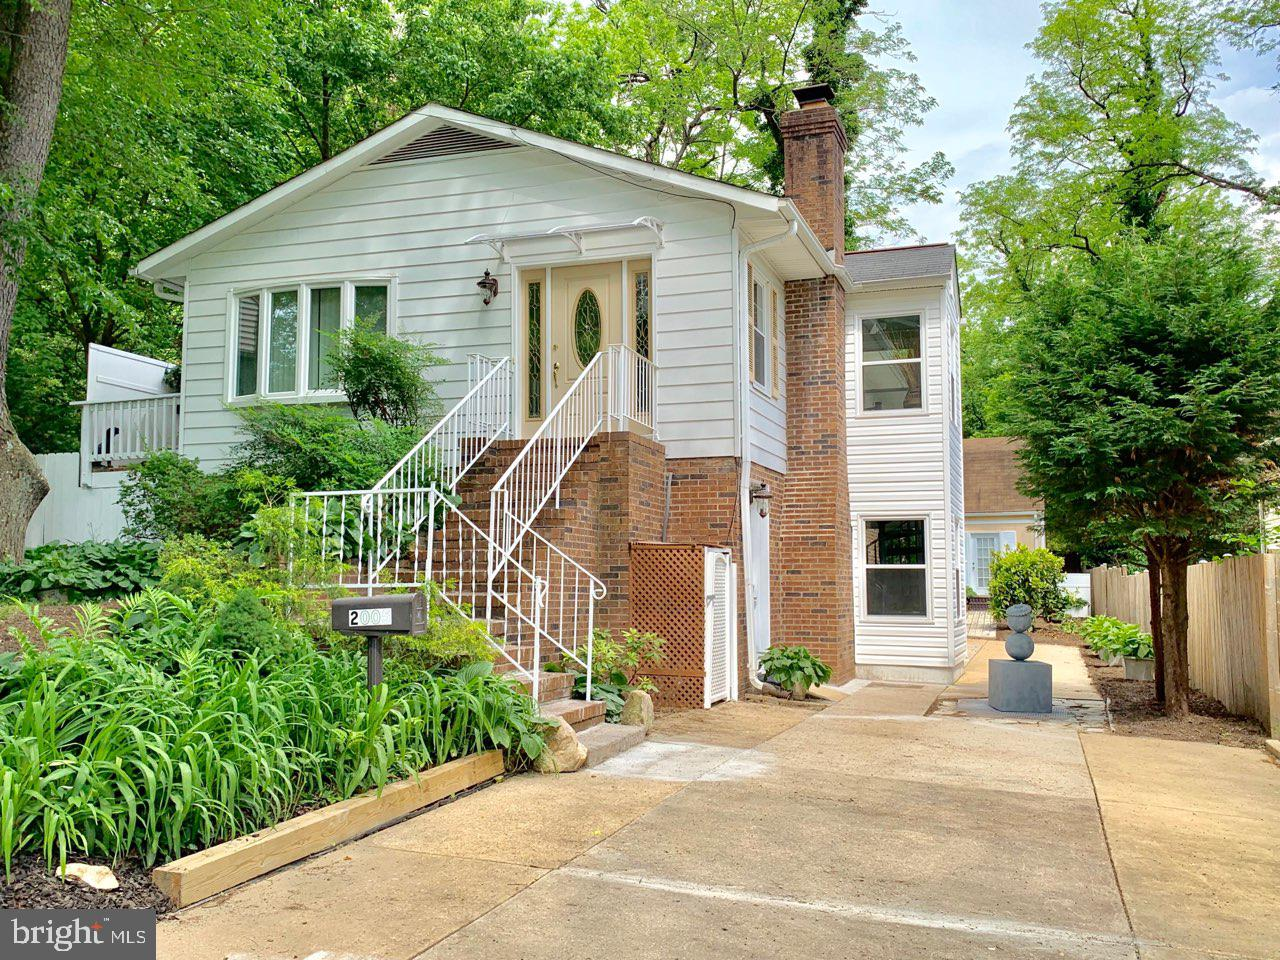 2005 GRACE CHURCH ROAD, SILVER SPRING, MD 20910